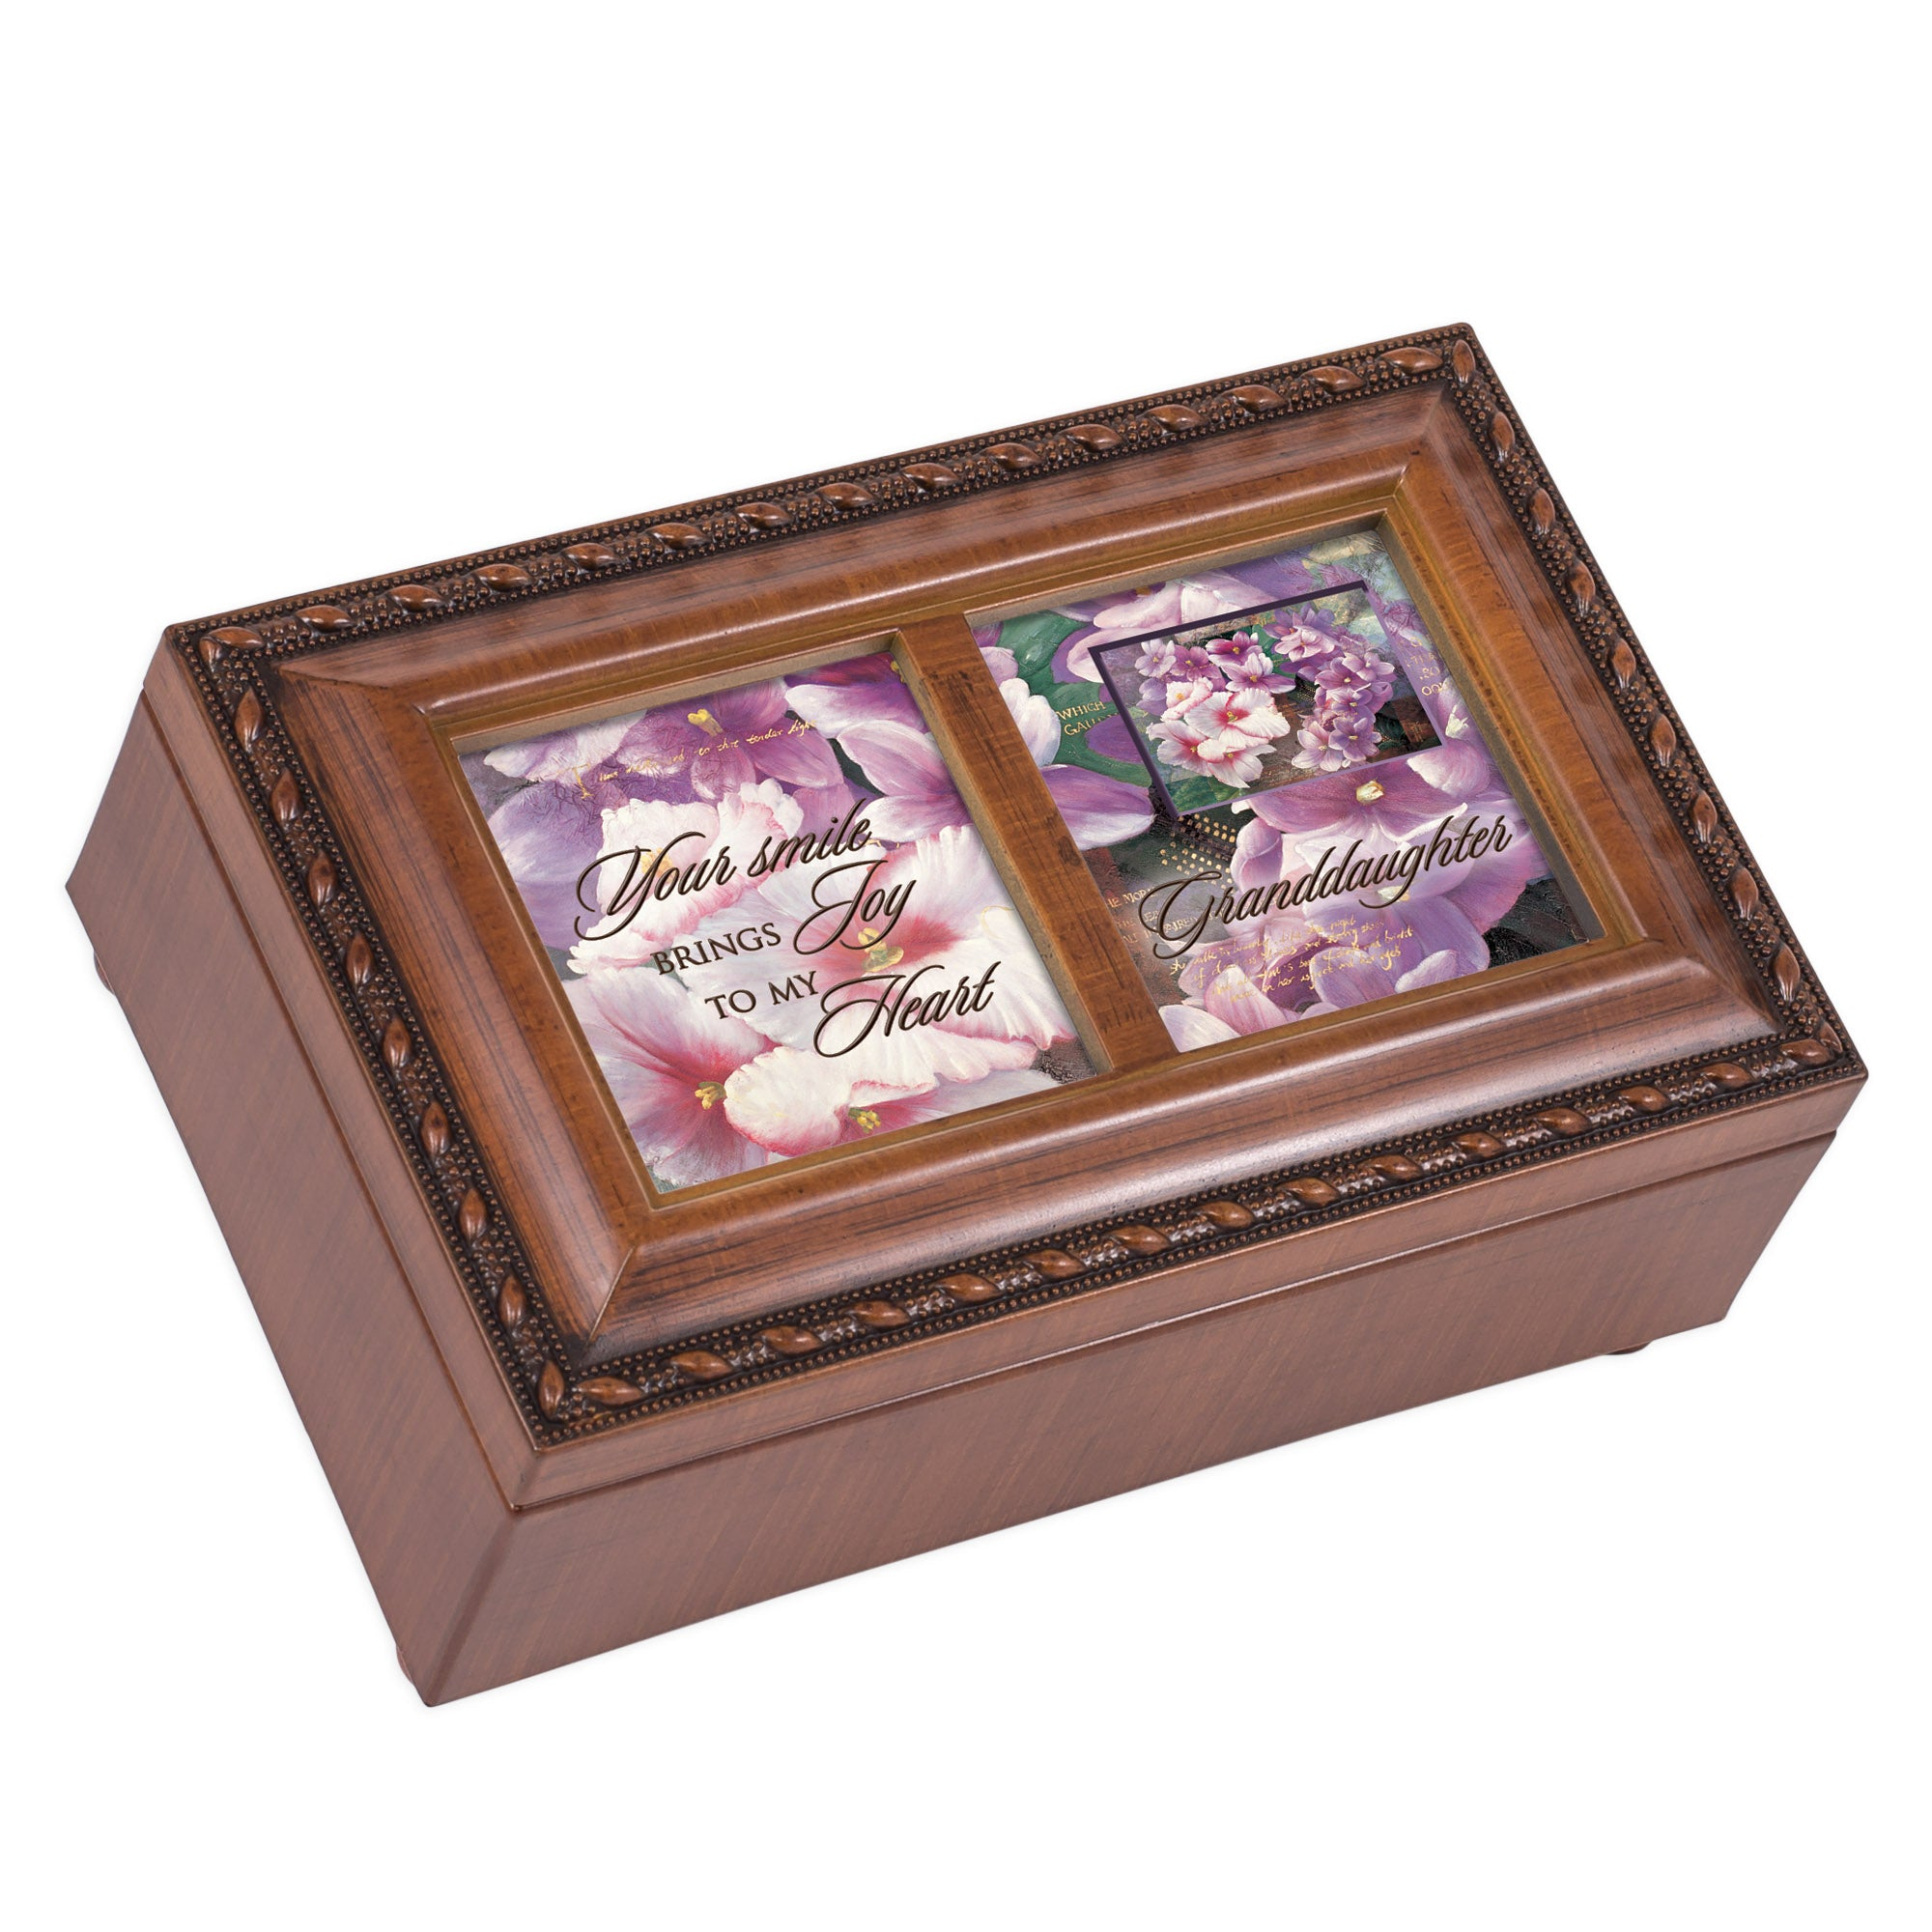 GRANDAUGHTER JEWELRY BOX